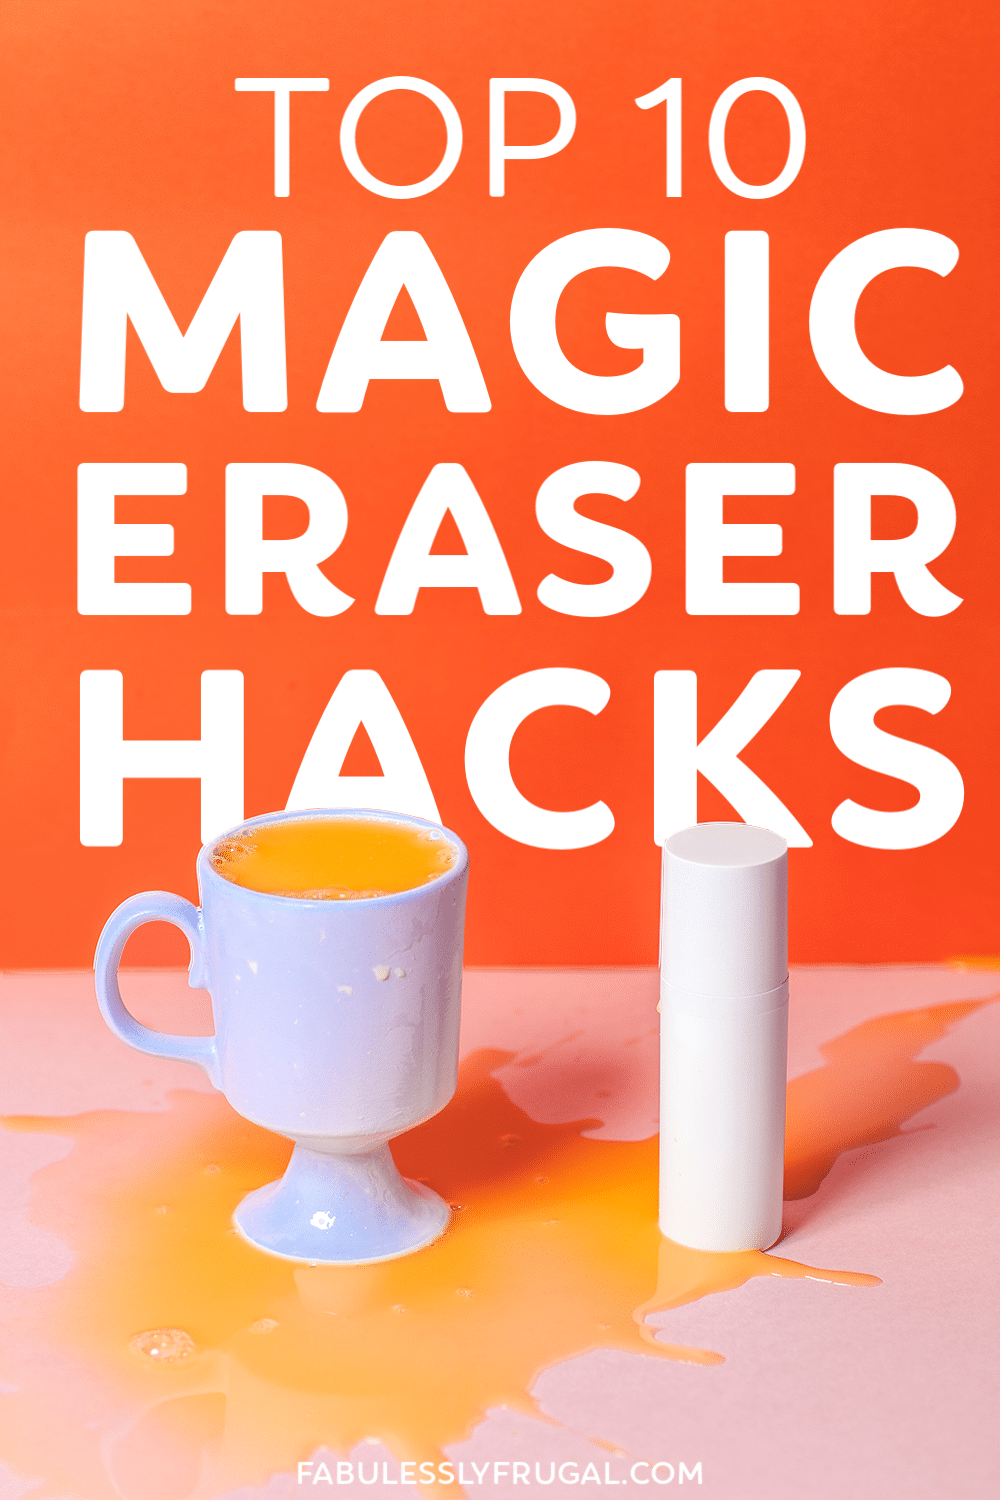 10 Magic Eraser Uses That Will Save You Tons of Time